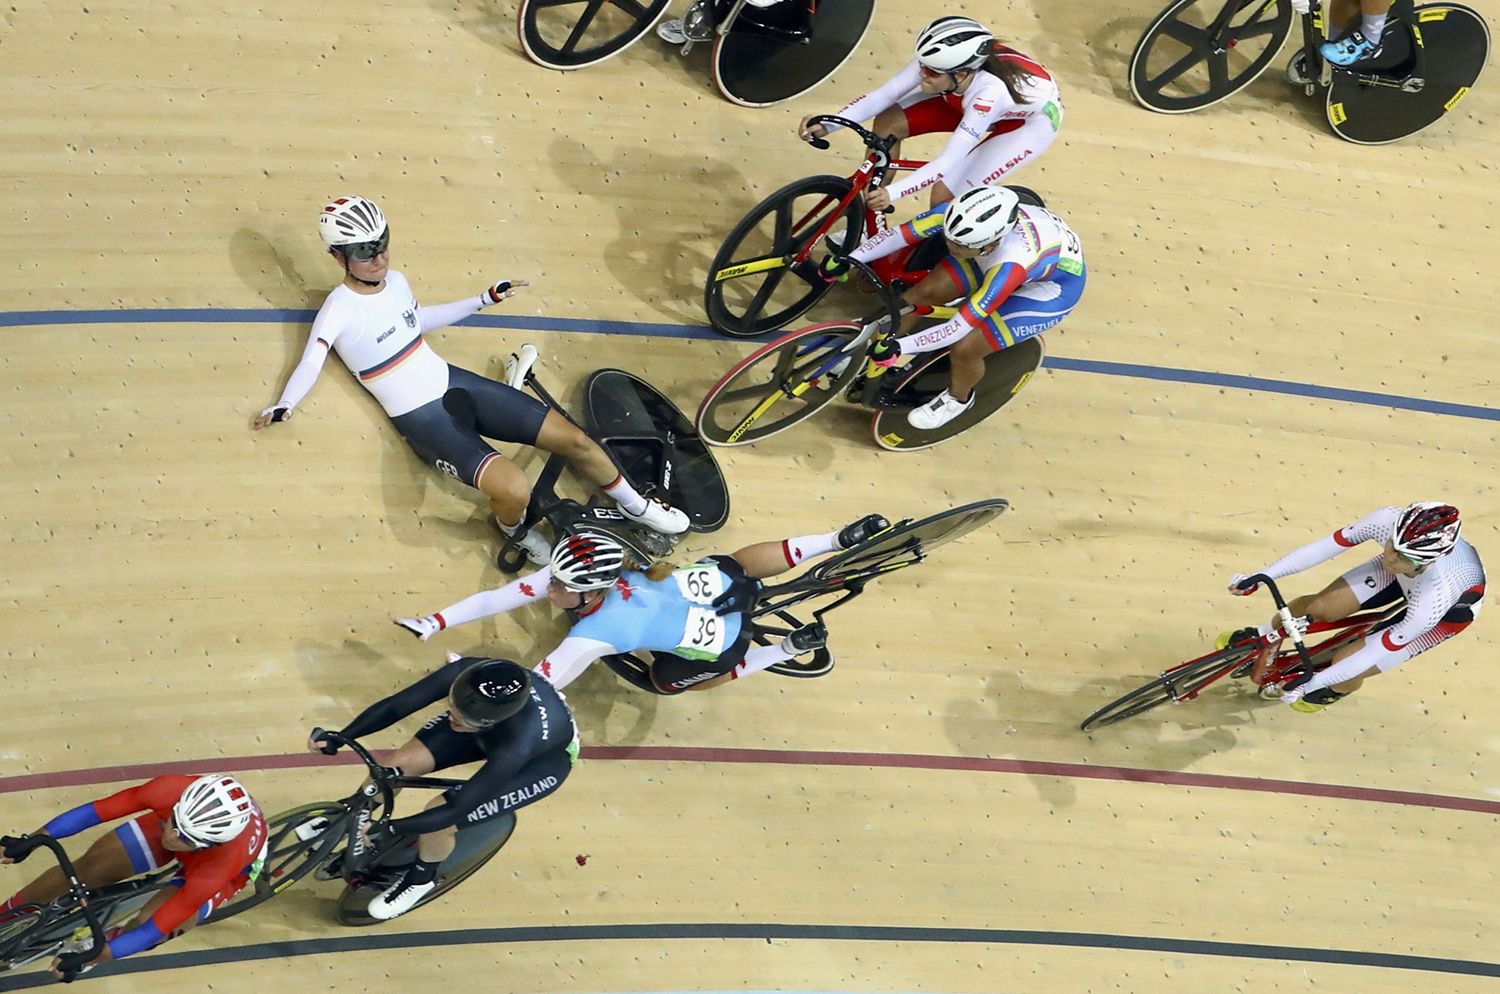 2016 Rio Olympics - Cycling Track - Final - Women's Omnium 10km Scratch Race  - Rio Olympic Velodrome - Rio de Janeiro, Brazil - 15/08/2016. Anna Knauer (GER) of Germany and Allison Beveridge (CAN) of Canada crash. REUTERS/Paul Hanna FOR EDITORIAL USE ONLY. NOT FOR SALE FOR  MARKETING OR ADVERTISING CAMPAIGNS.  - RTX2KYTV